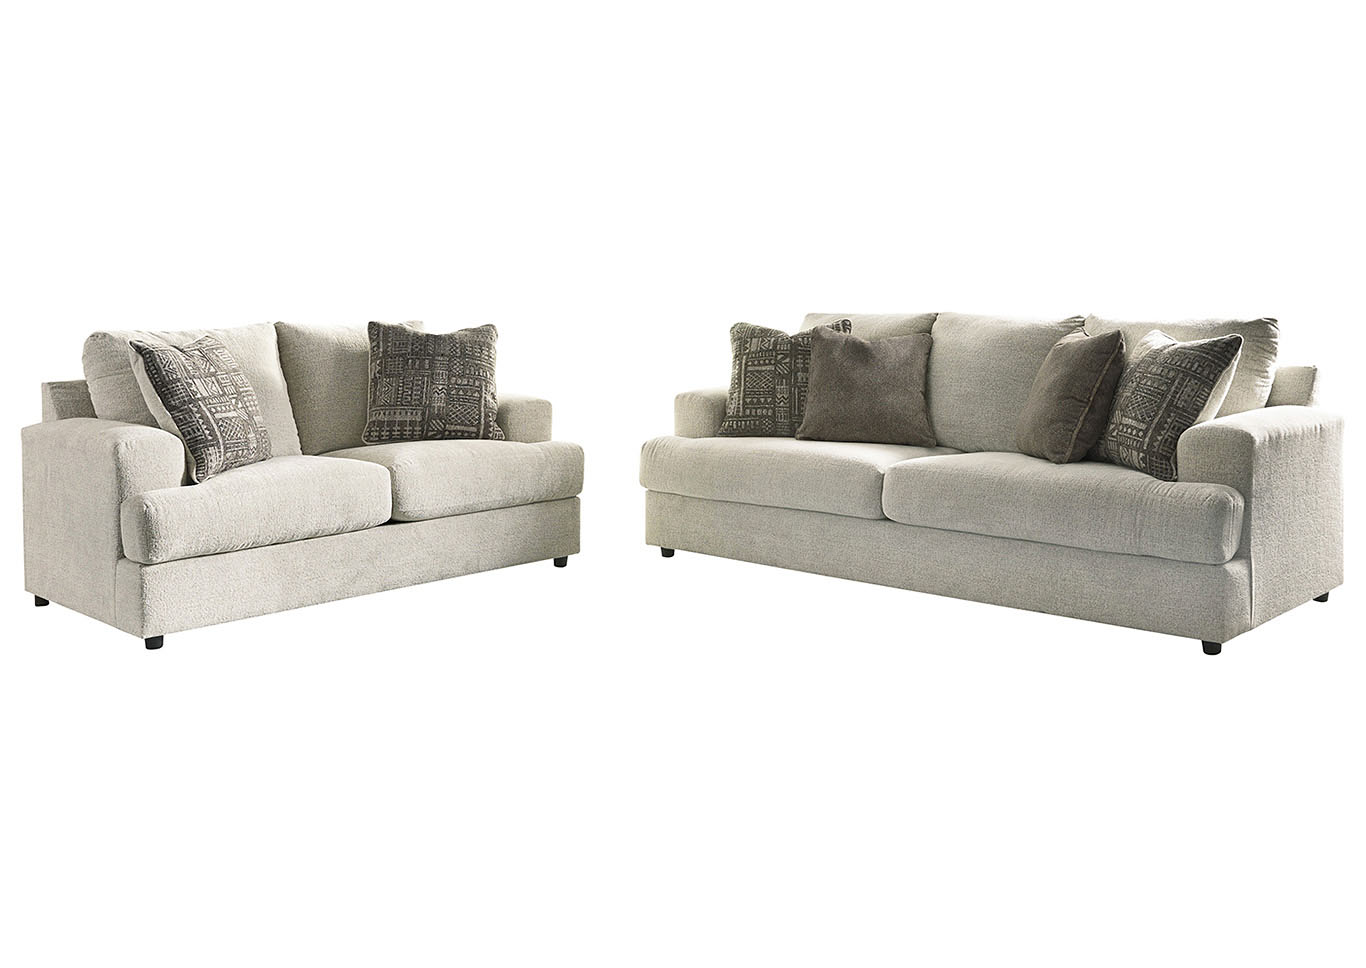 Soletren Sofa and Loveseat